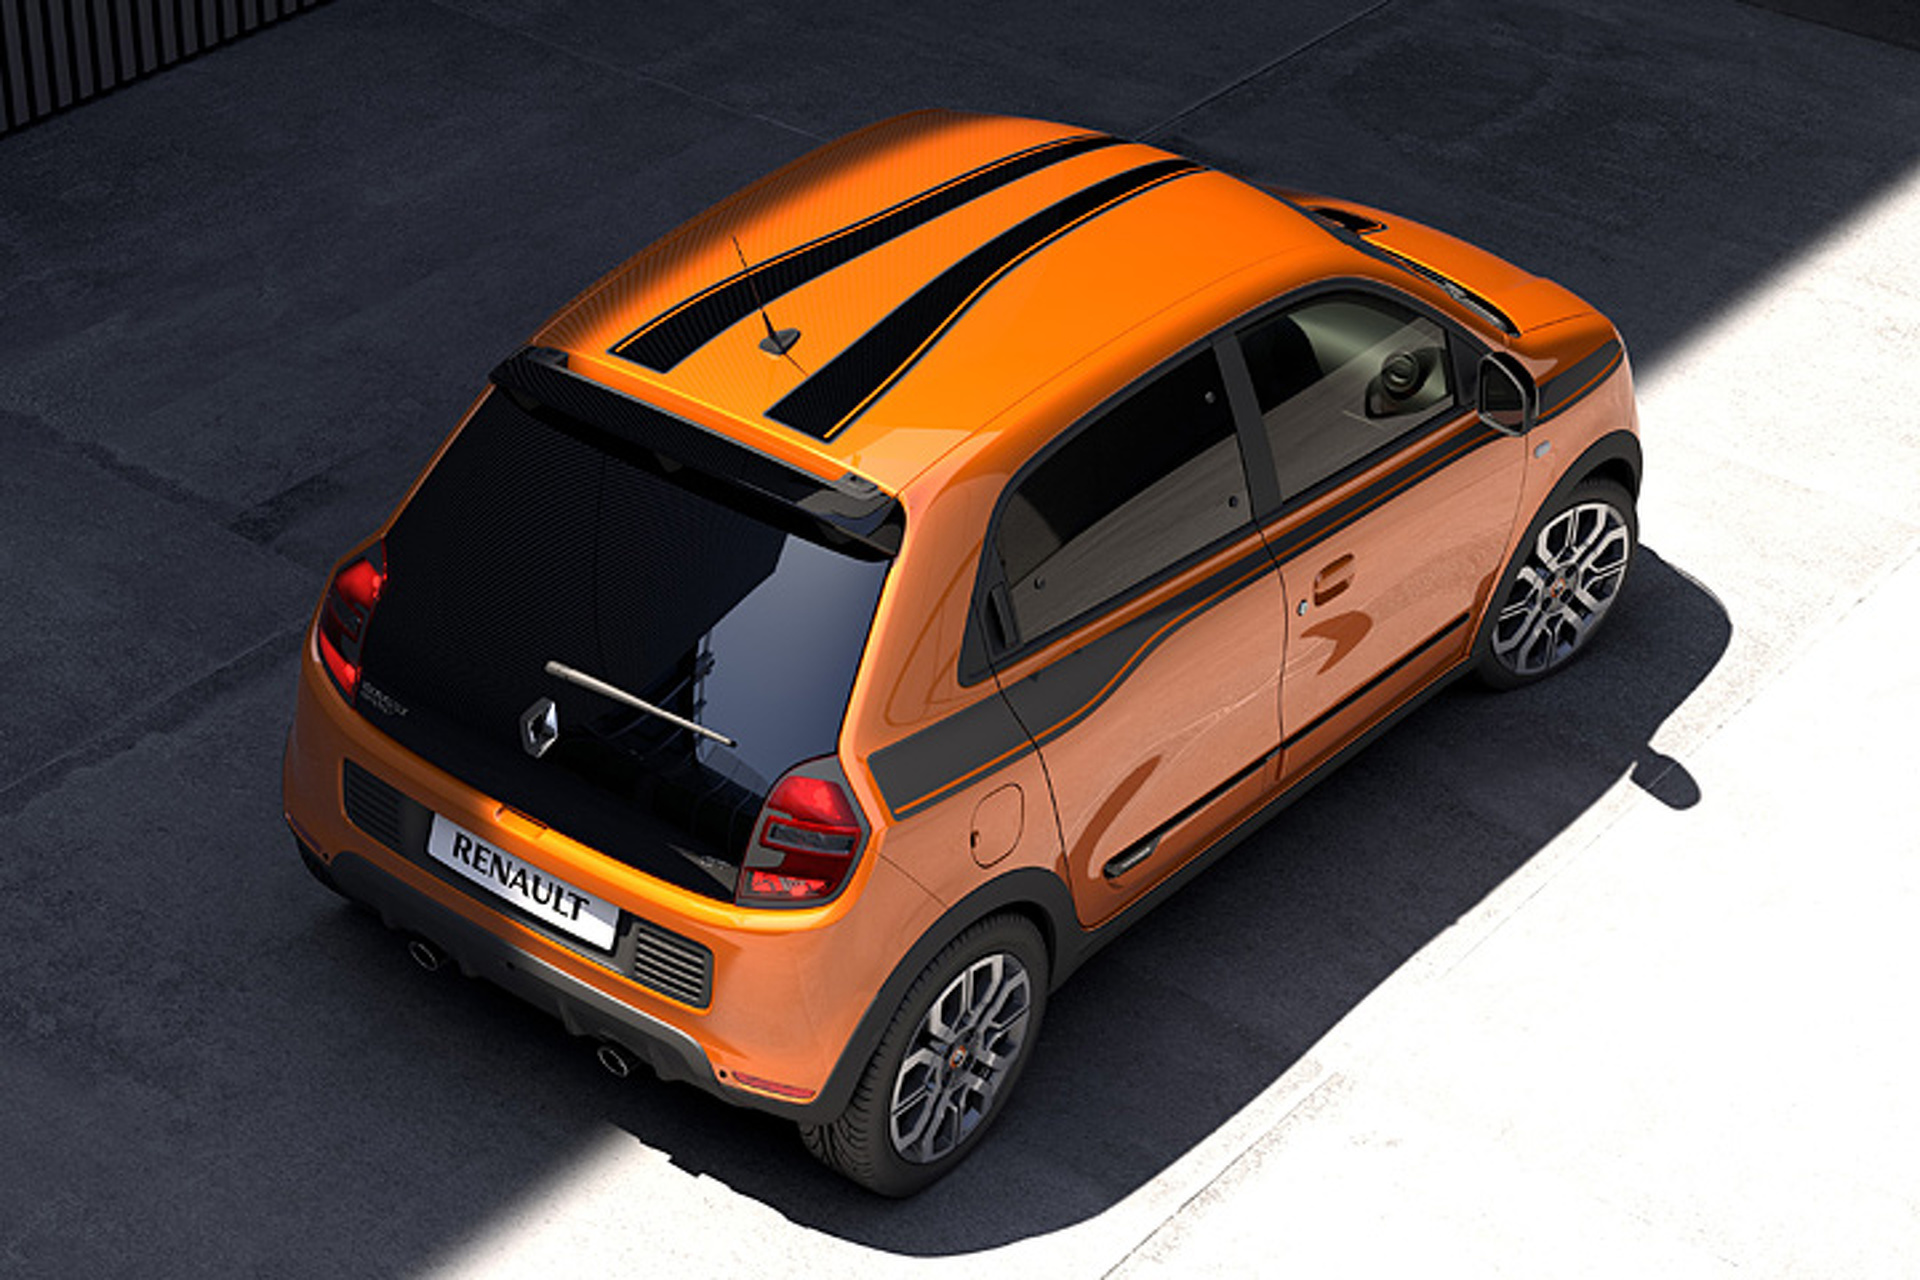 Spicy New Renault Hatchback Sadly Won't Come to the USA